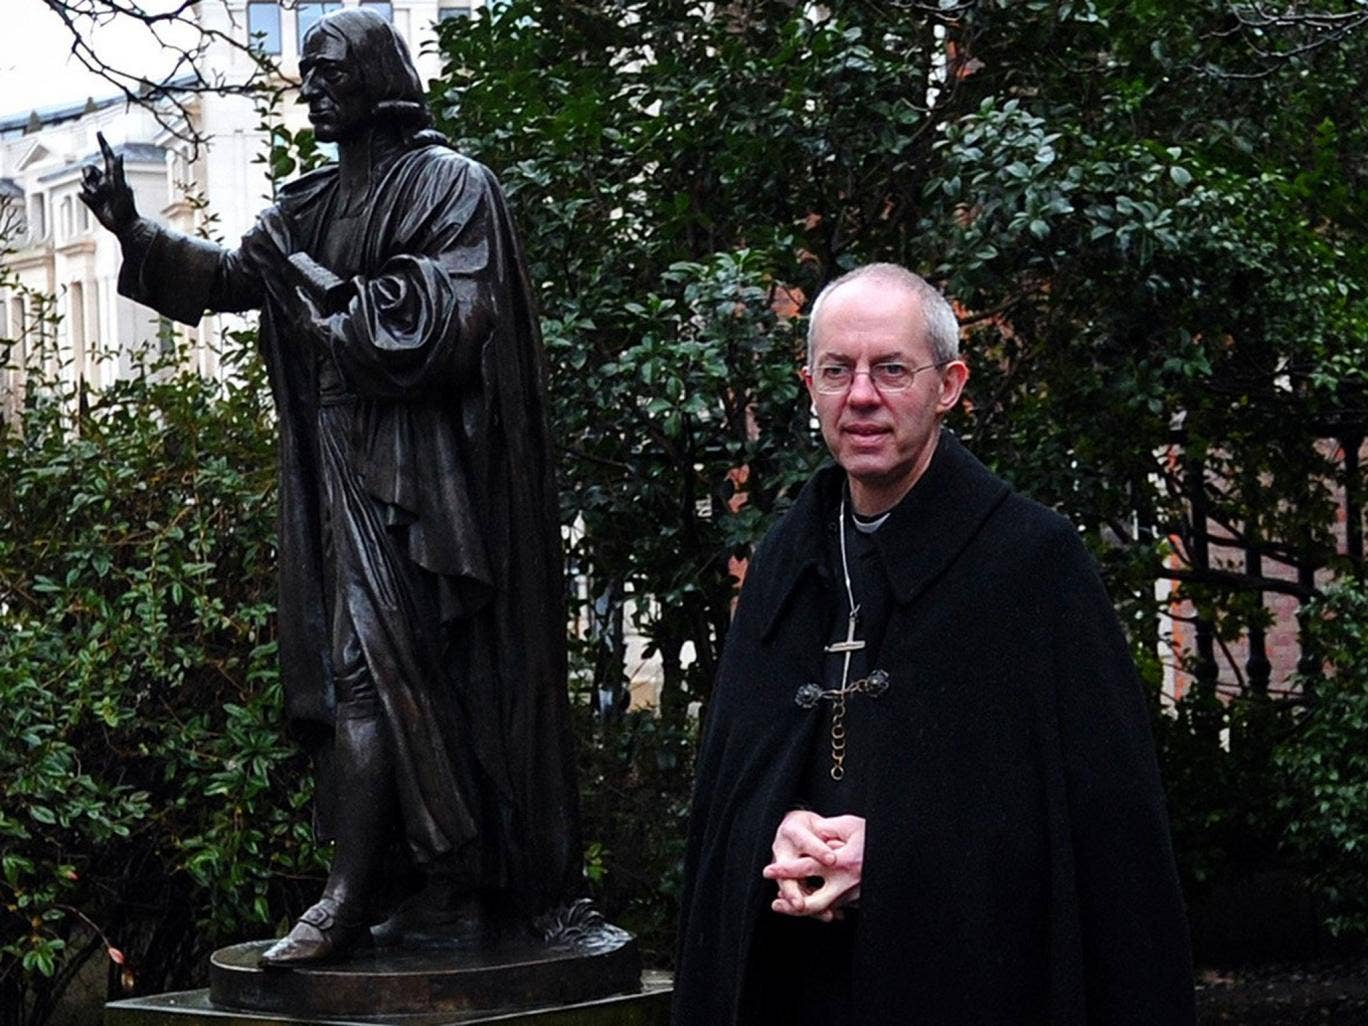 Justin Welby has abandoned his support for civil partnerships for heterosexual couples